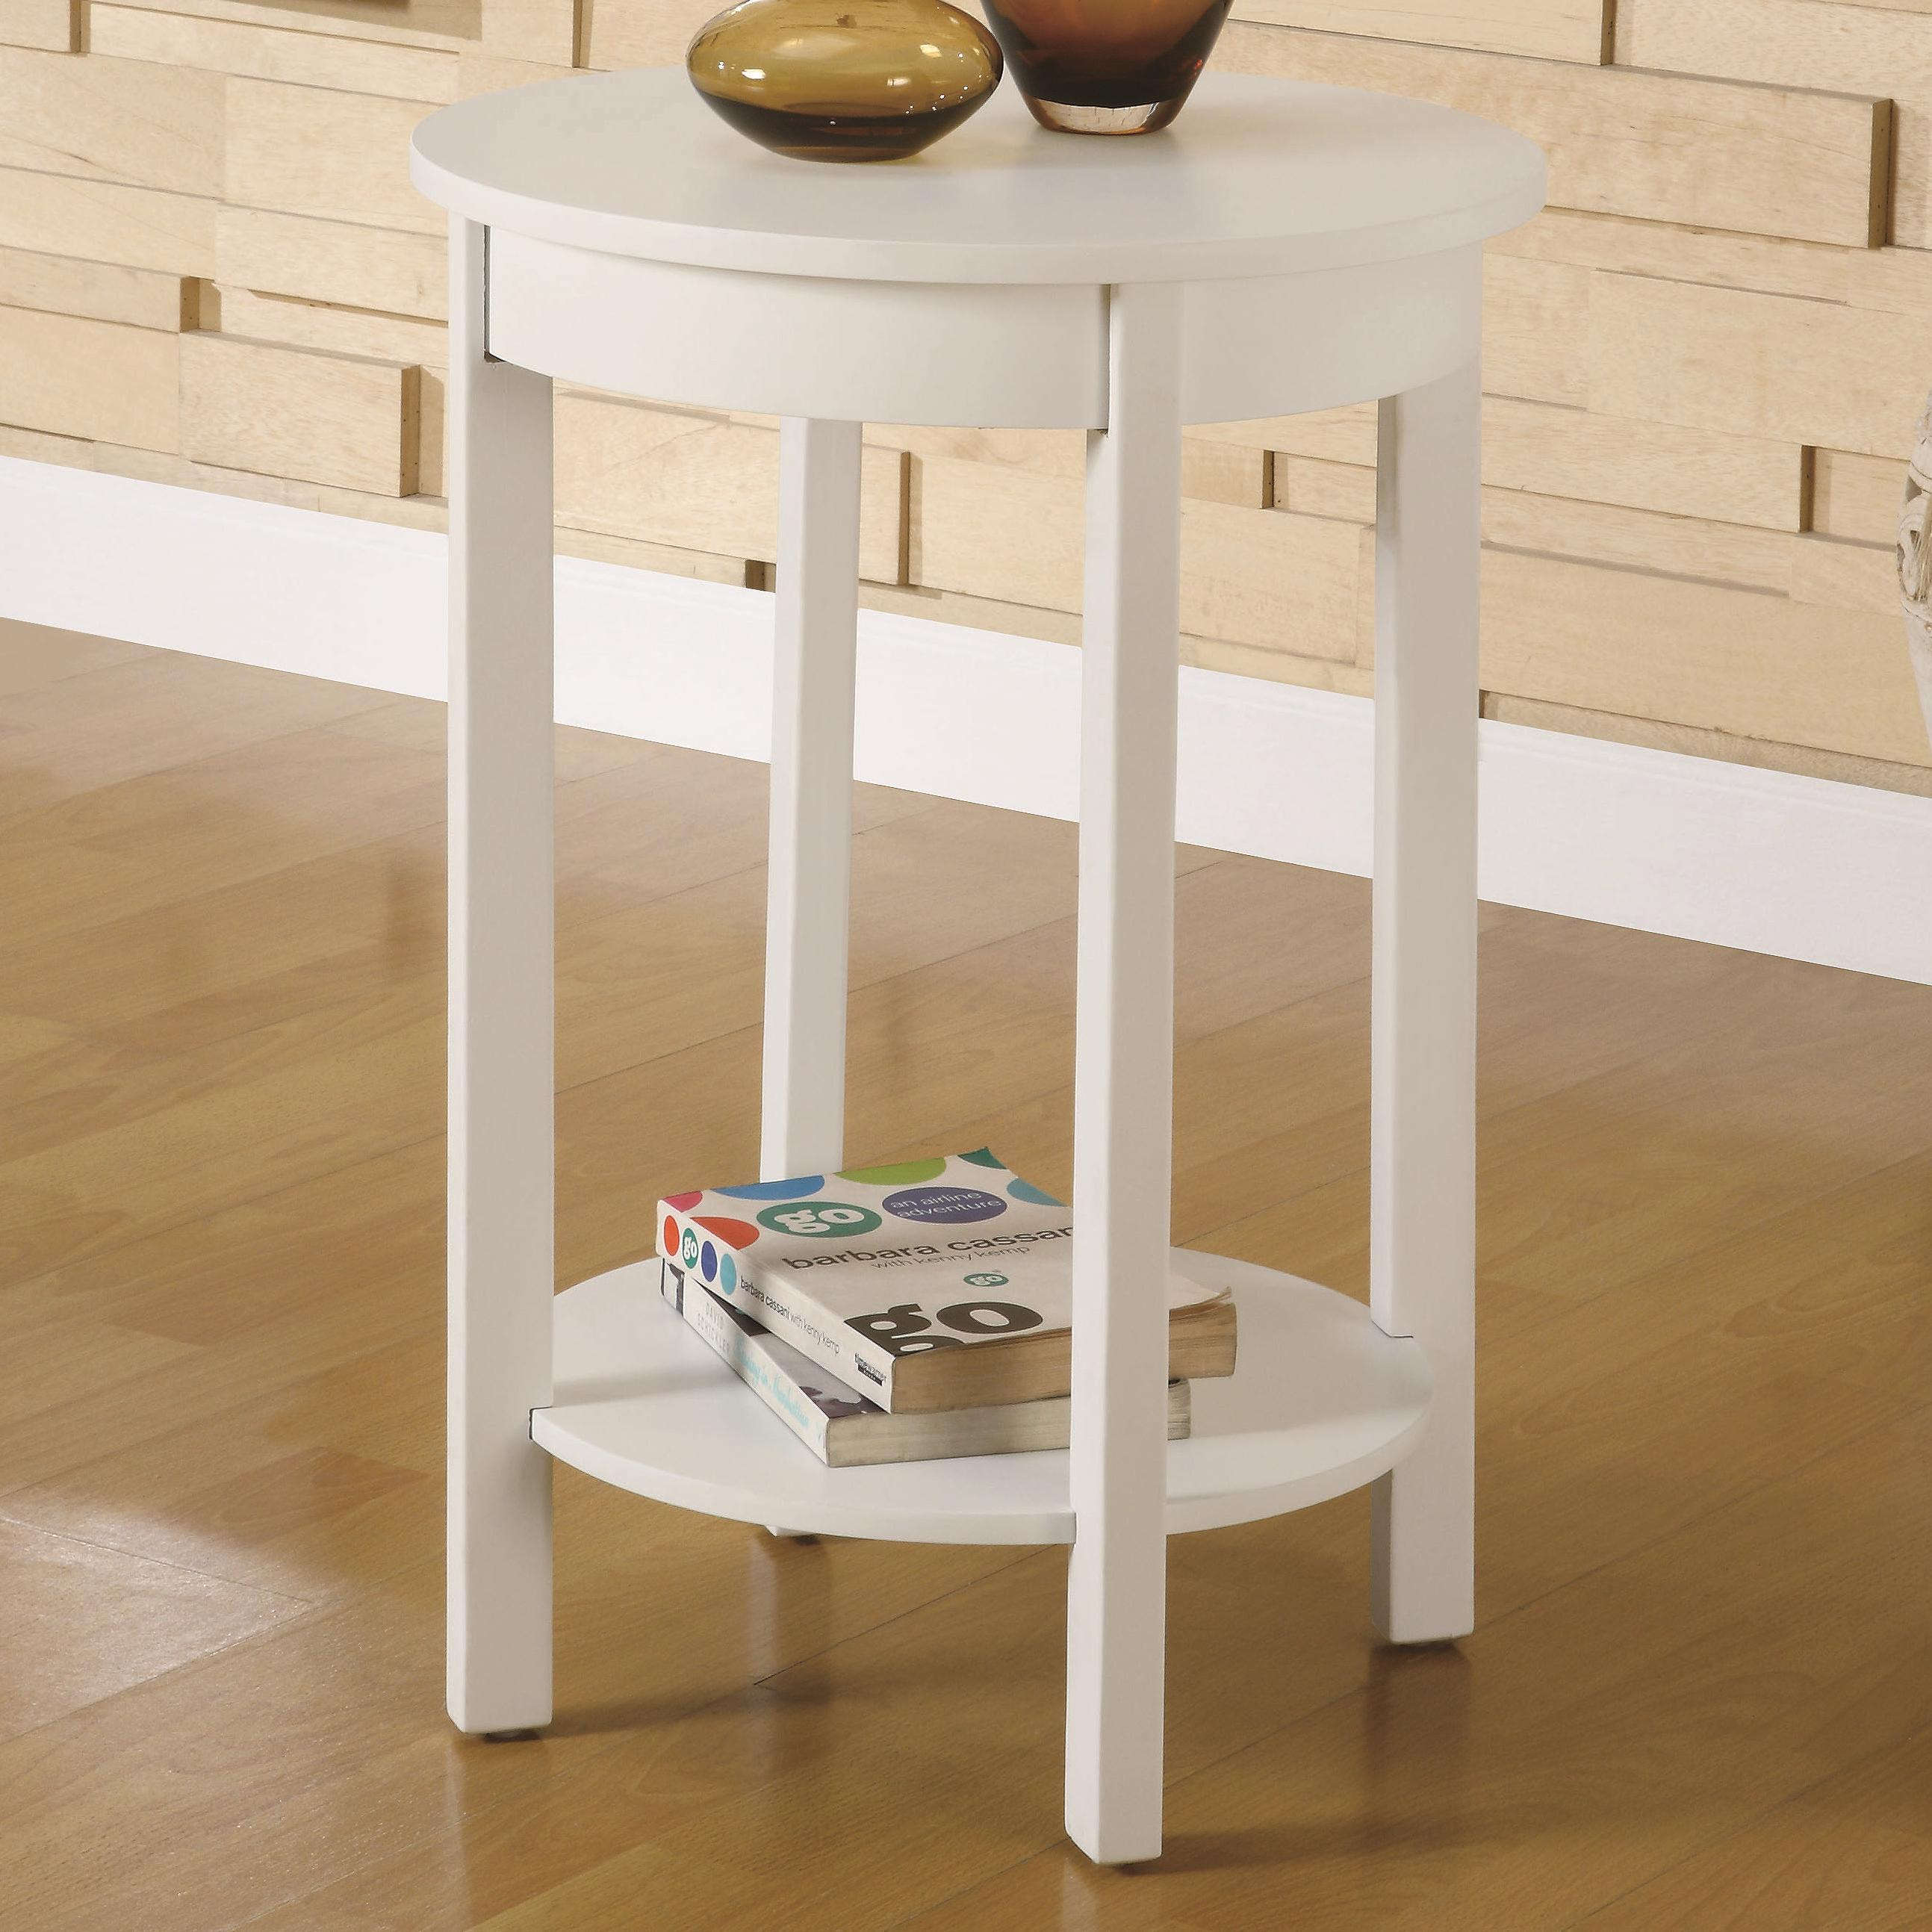 likable narrow end tables for bedroom study small accent sets target table tall stands africa writing and designs modern bedrooms olx makeup dressing diy side lamps chair master